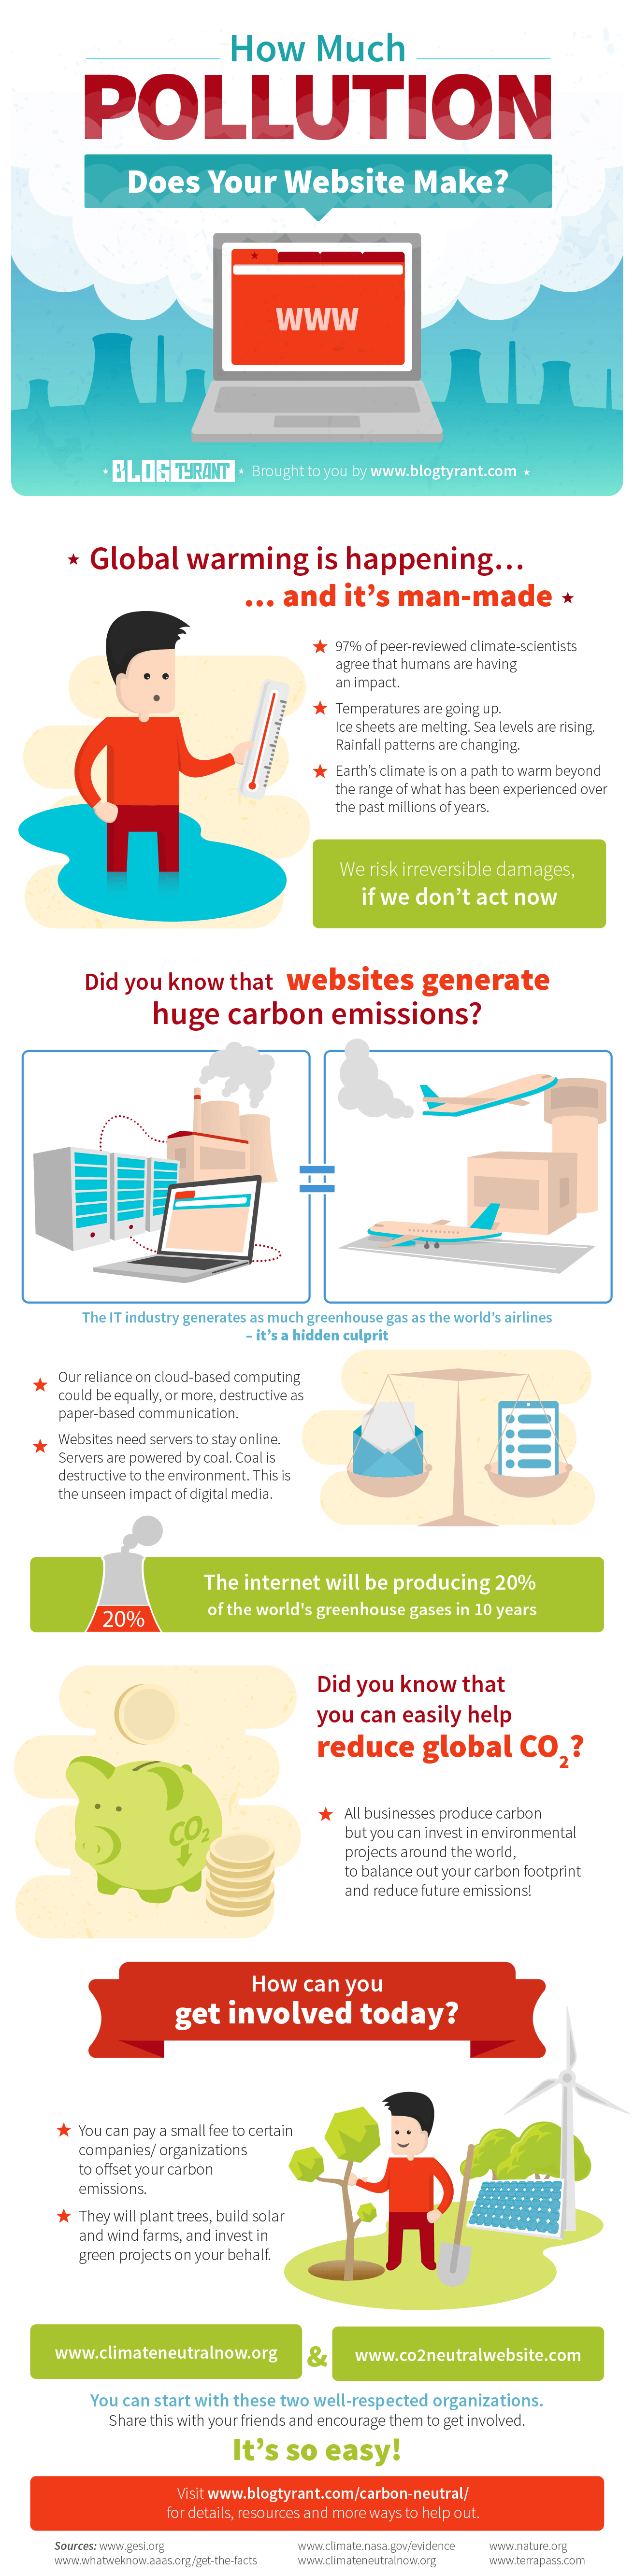 How Much Pollution Does Your Website Make